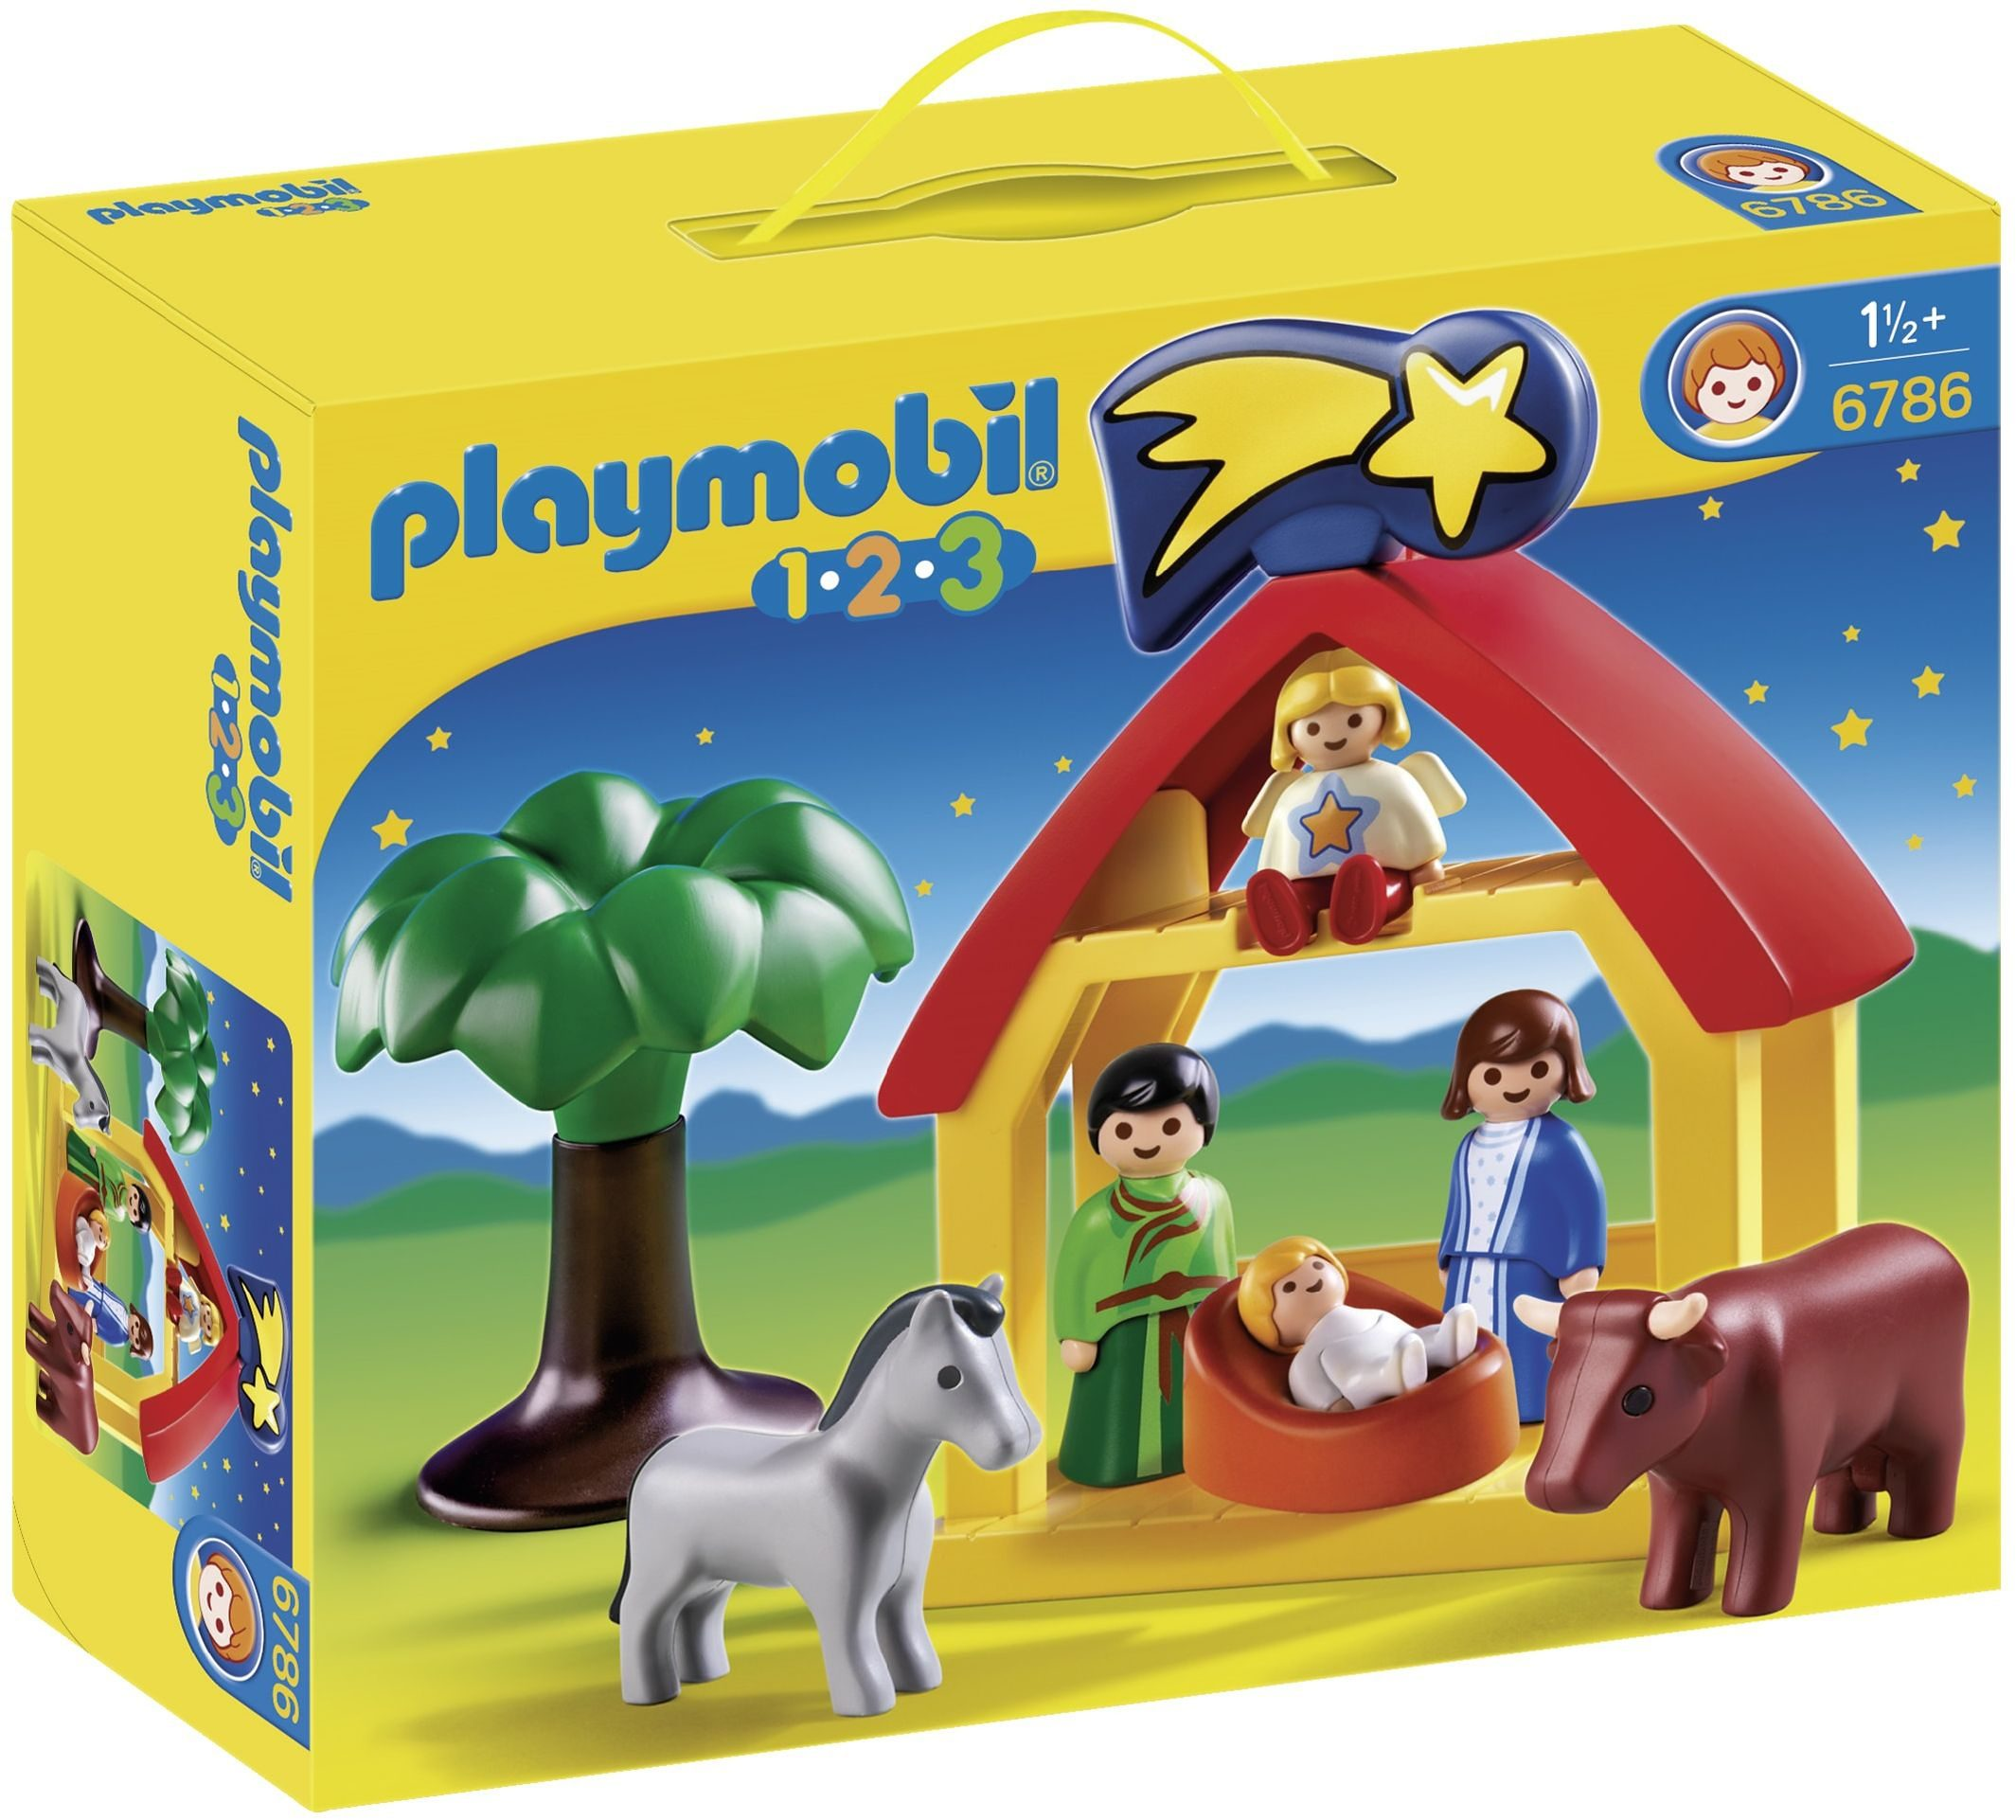 Playmobil® Weihnachtskrippe (6786), Playmobil 1-2-3